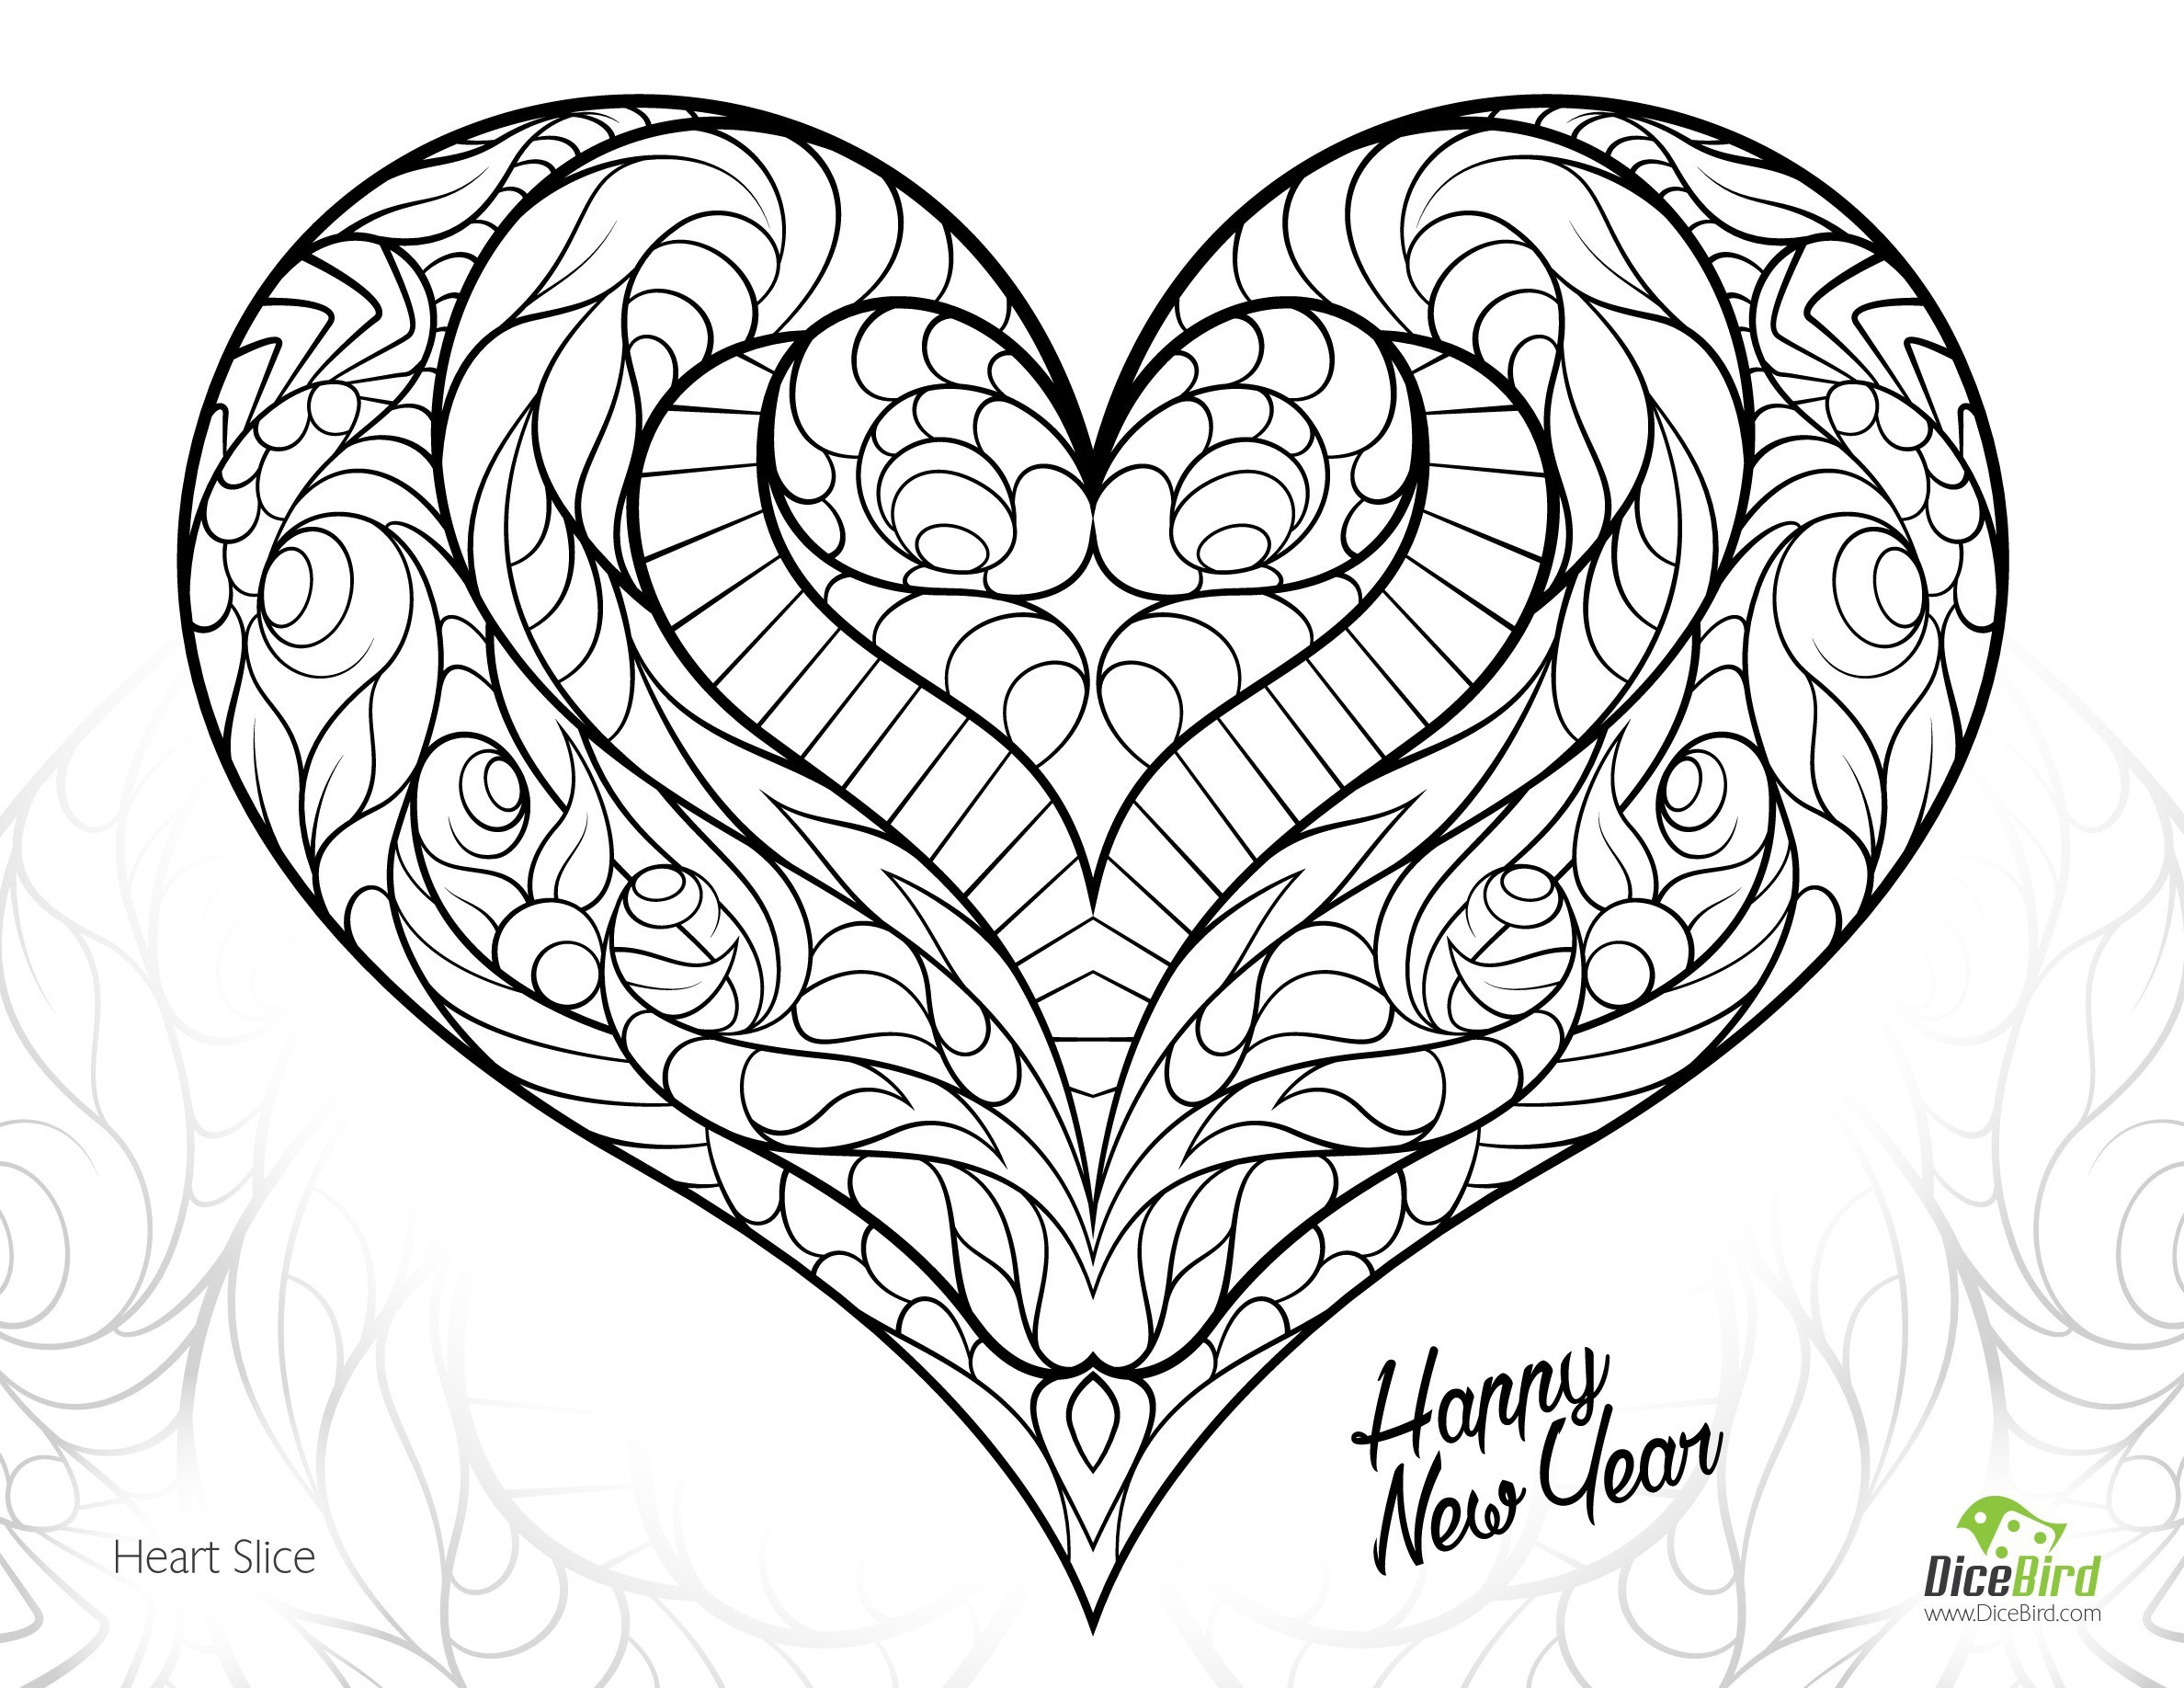 Free Coloring Pages Hearts Free Coloring Pages Of Hearts Printable Heart Coloring Pages New